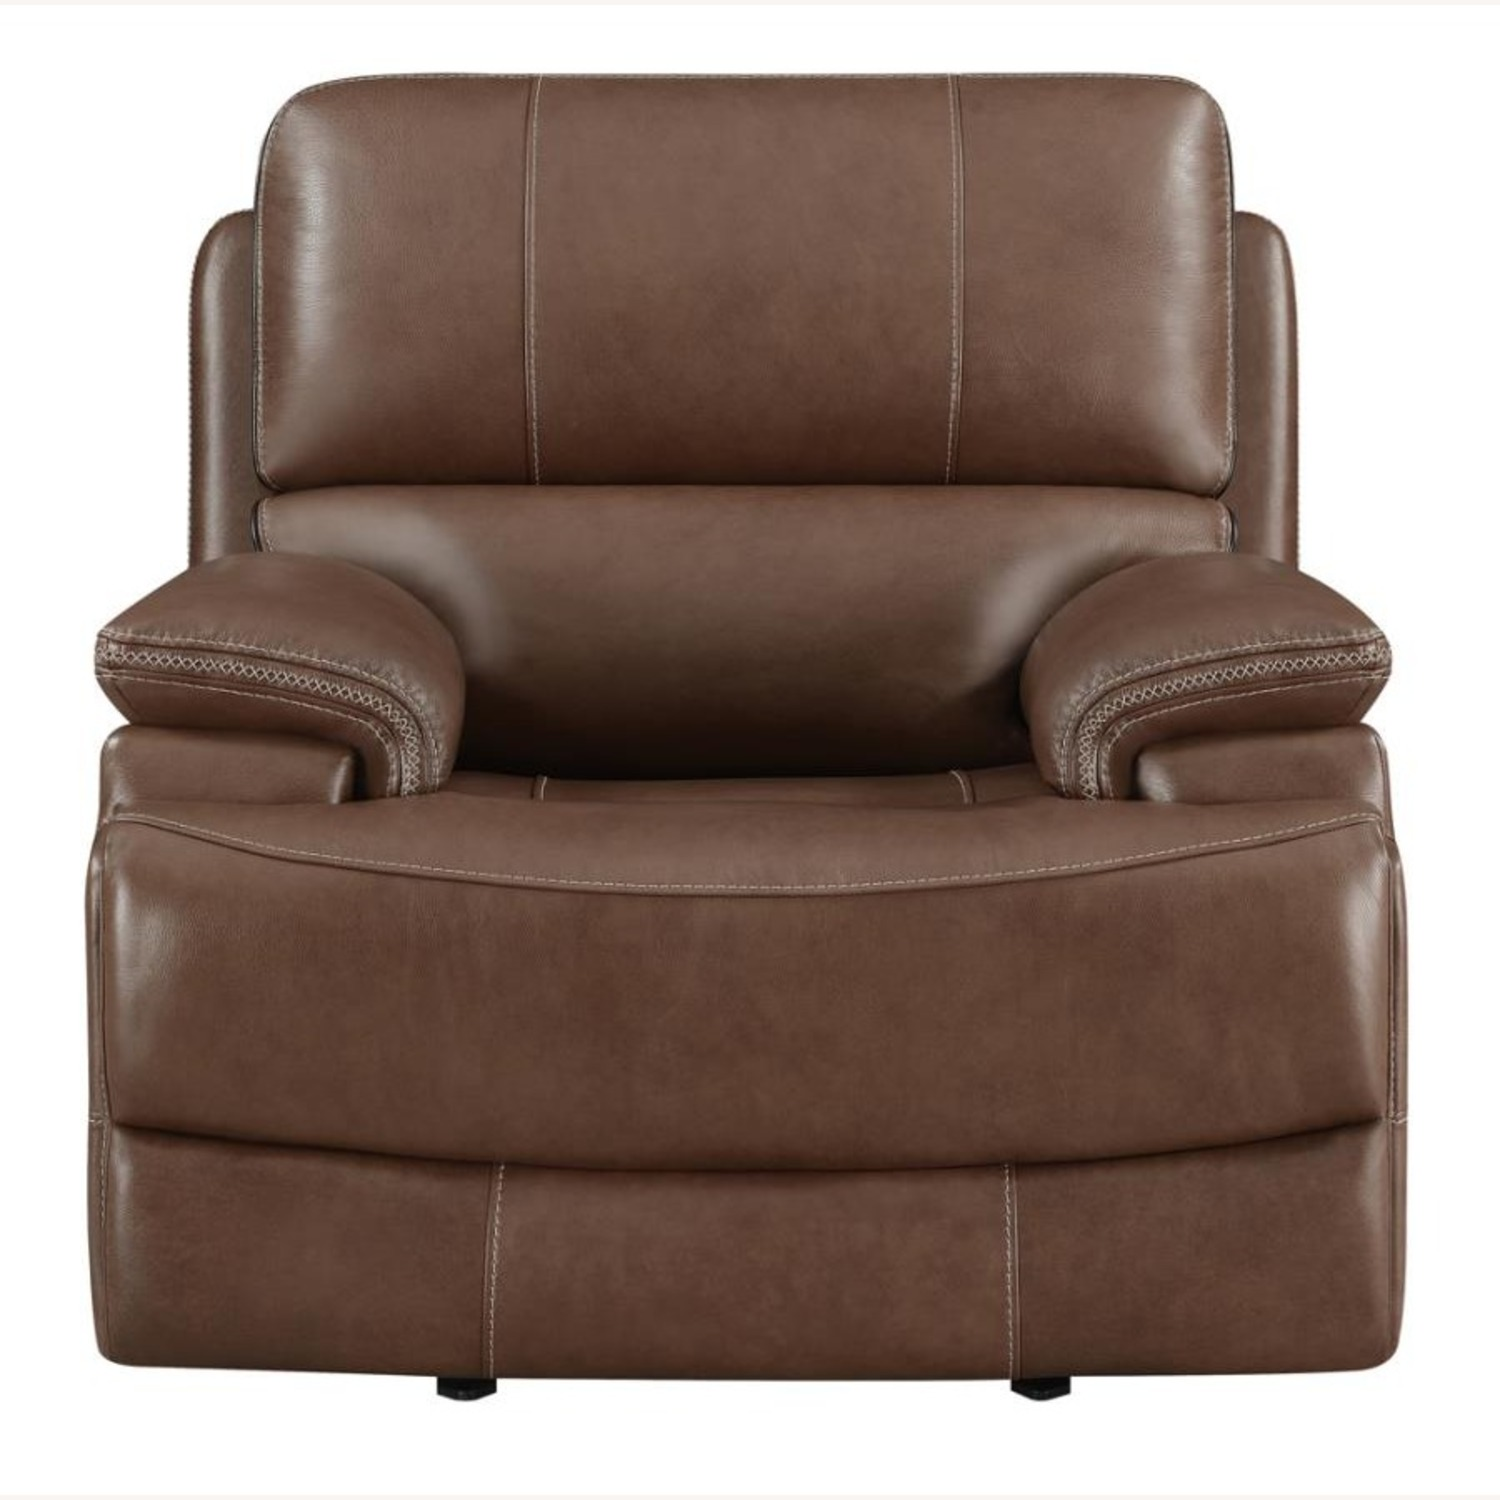 Power Recliner In Saddle Brown Leather - image-2